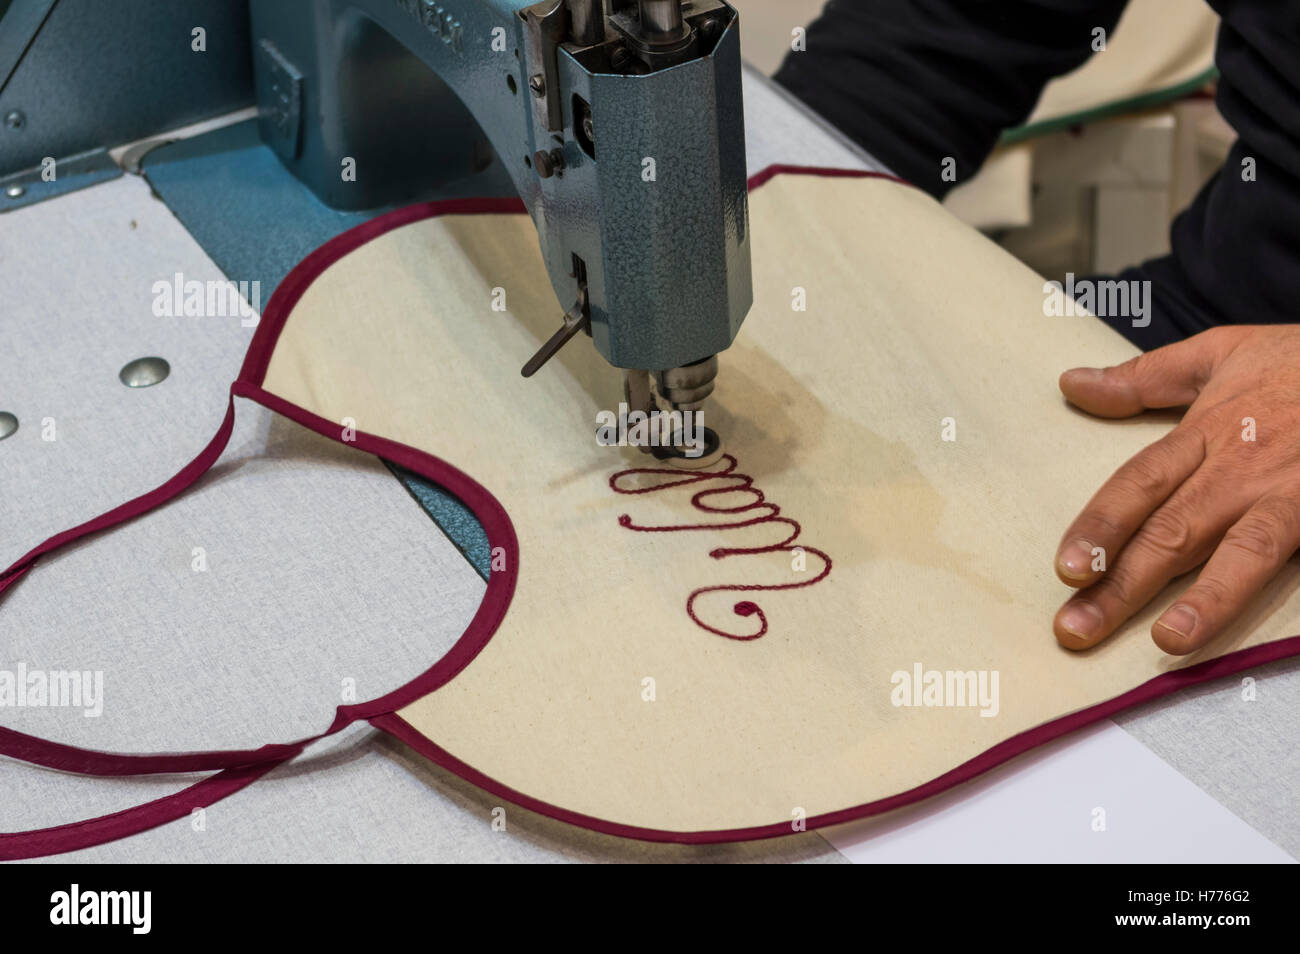 Embroidery Of A Name In Script Typeface Using A Stitching Machine